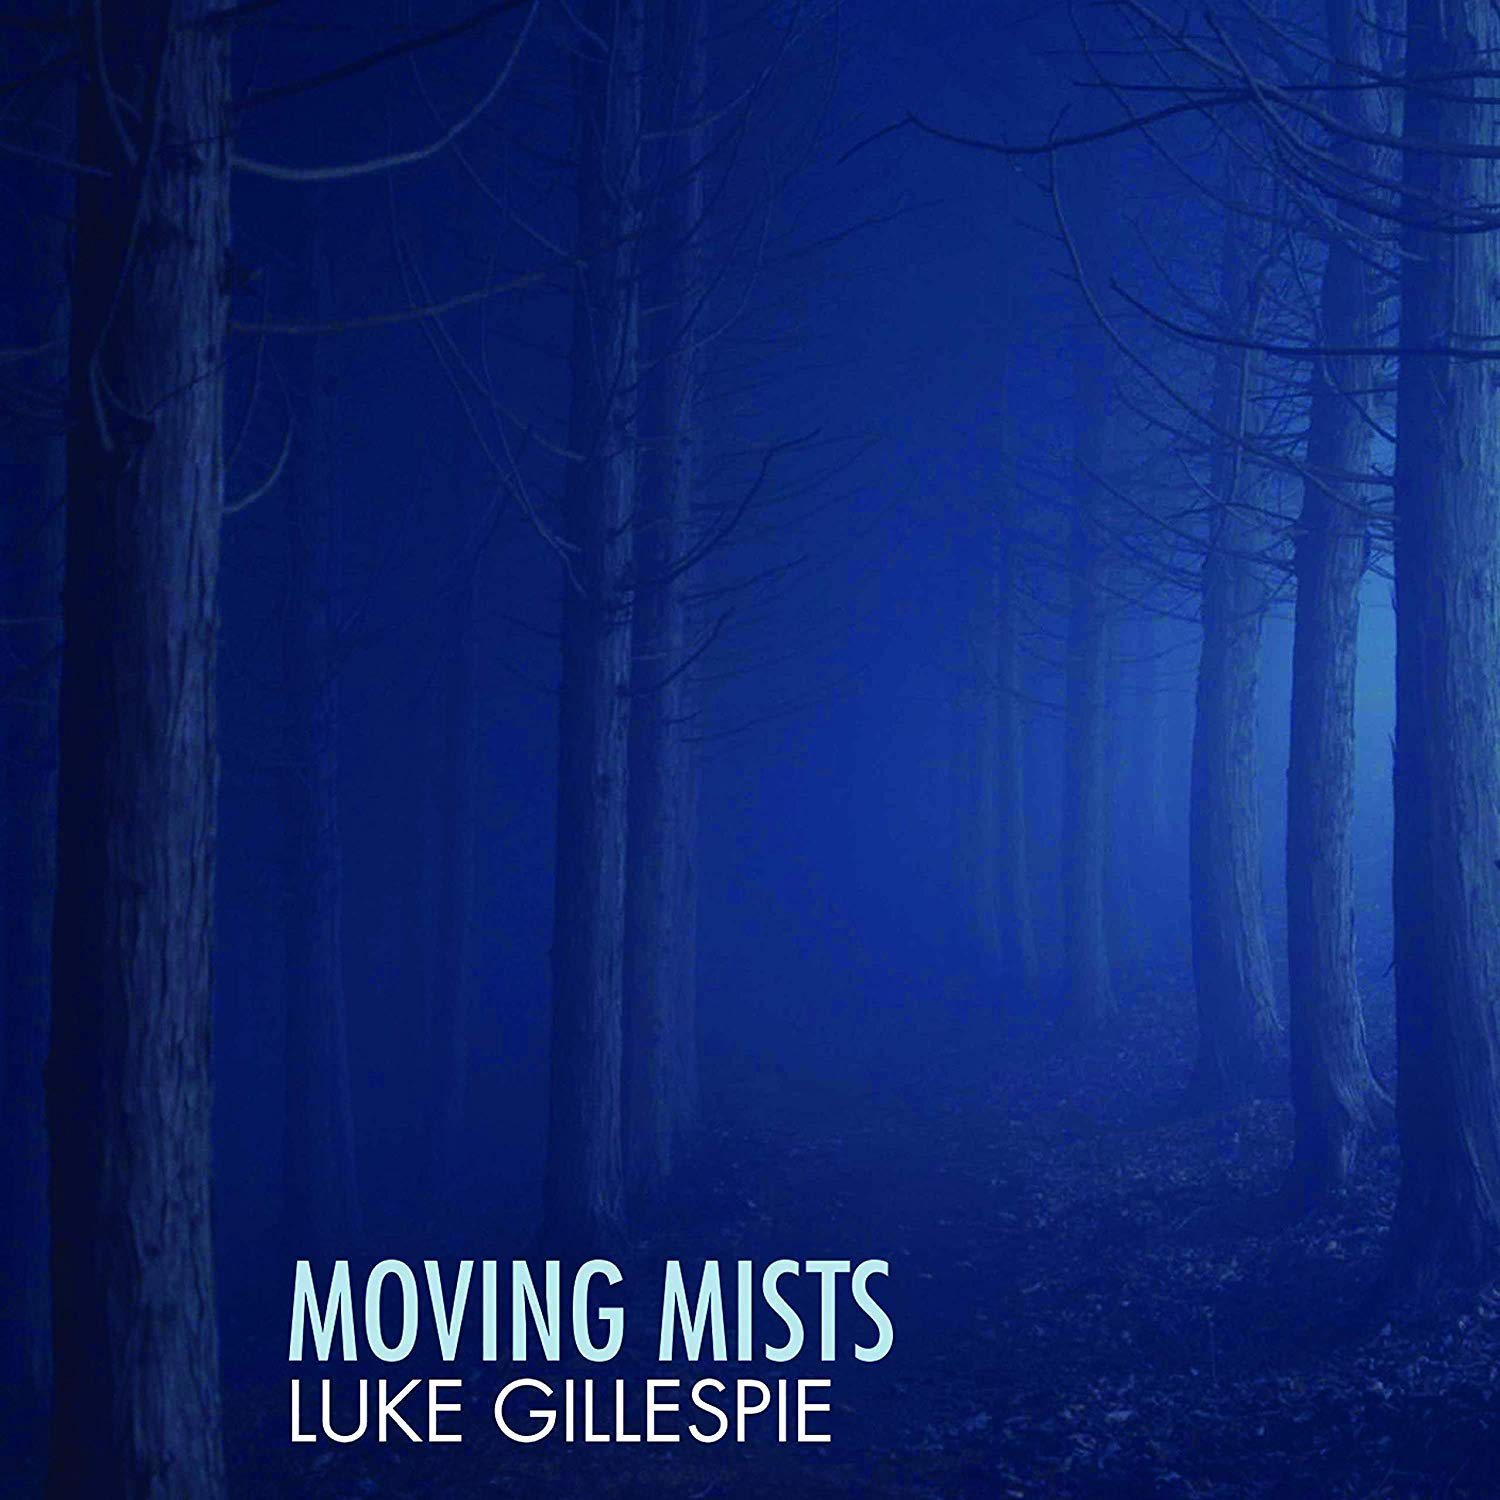 Luke Gillespie - Moving Mists